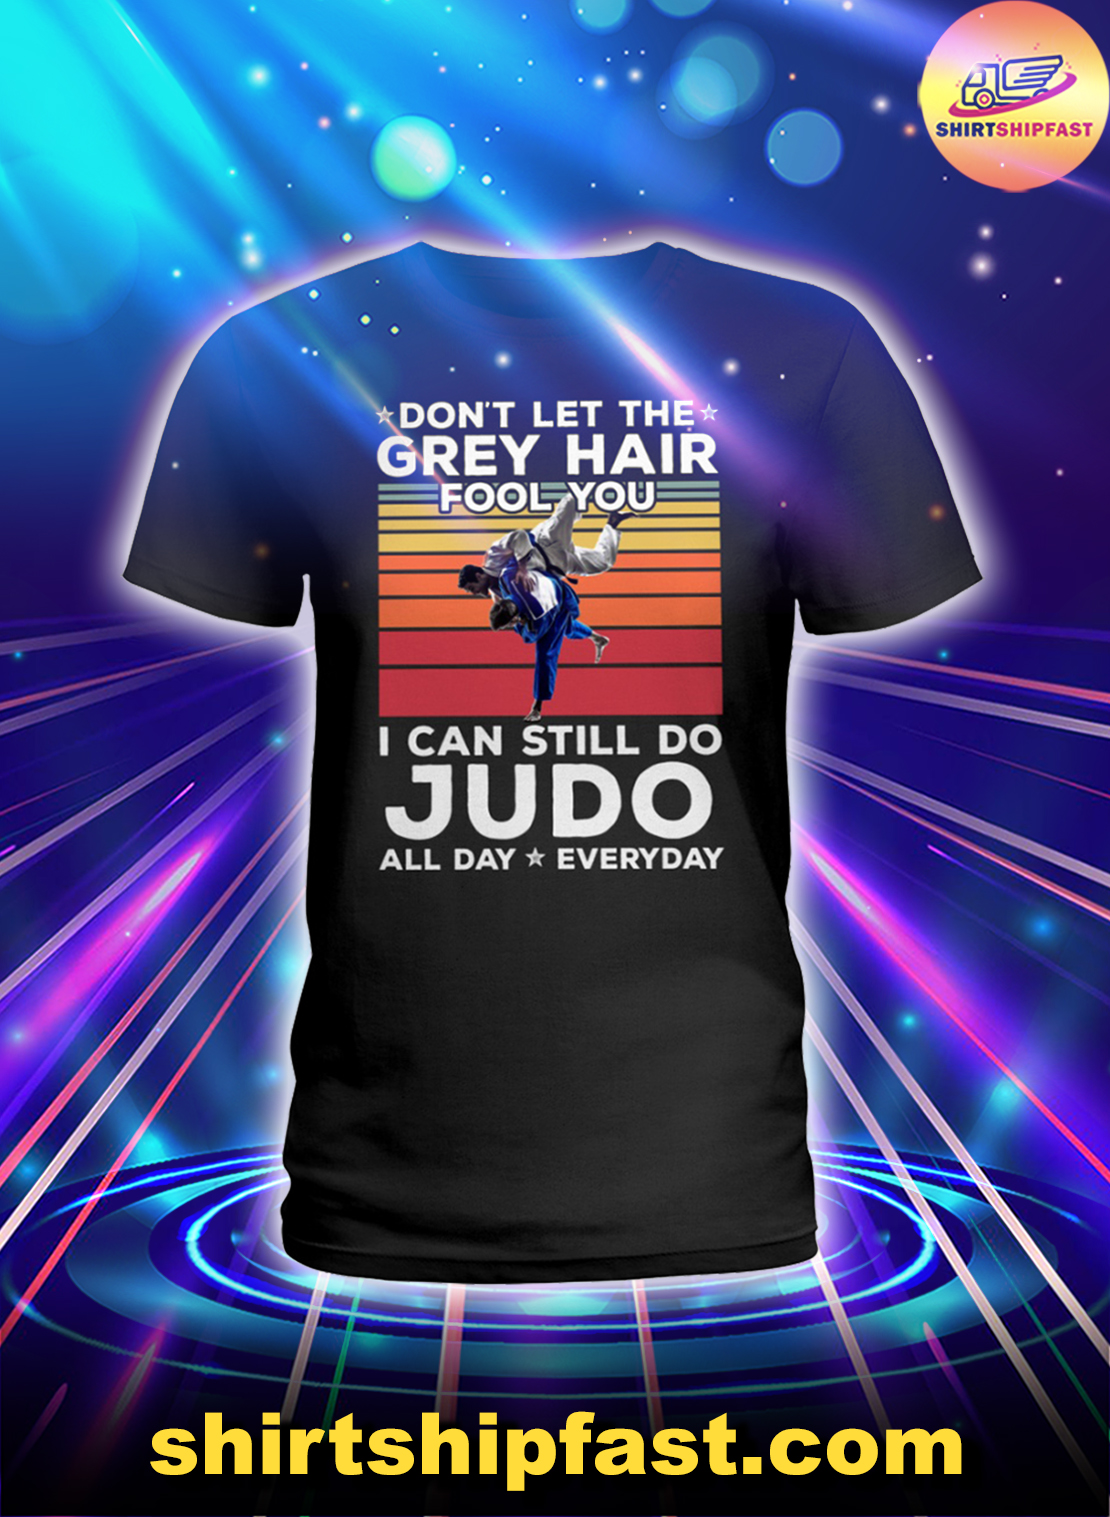 Don't let the grey hair fool you I can still do Judo all day everyday lady shirt